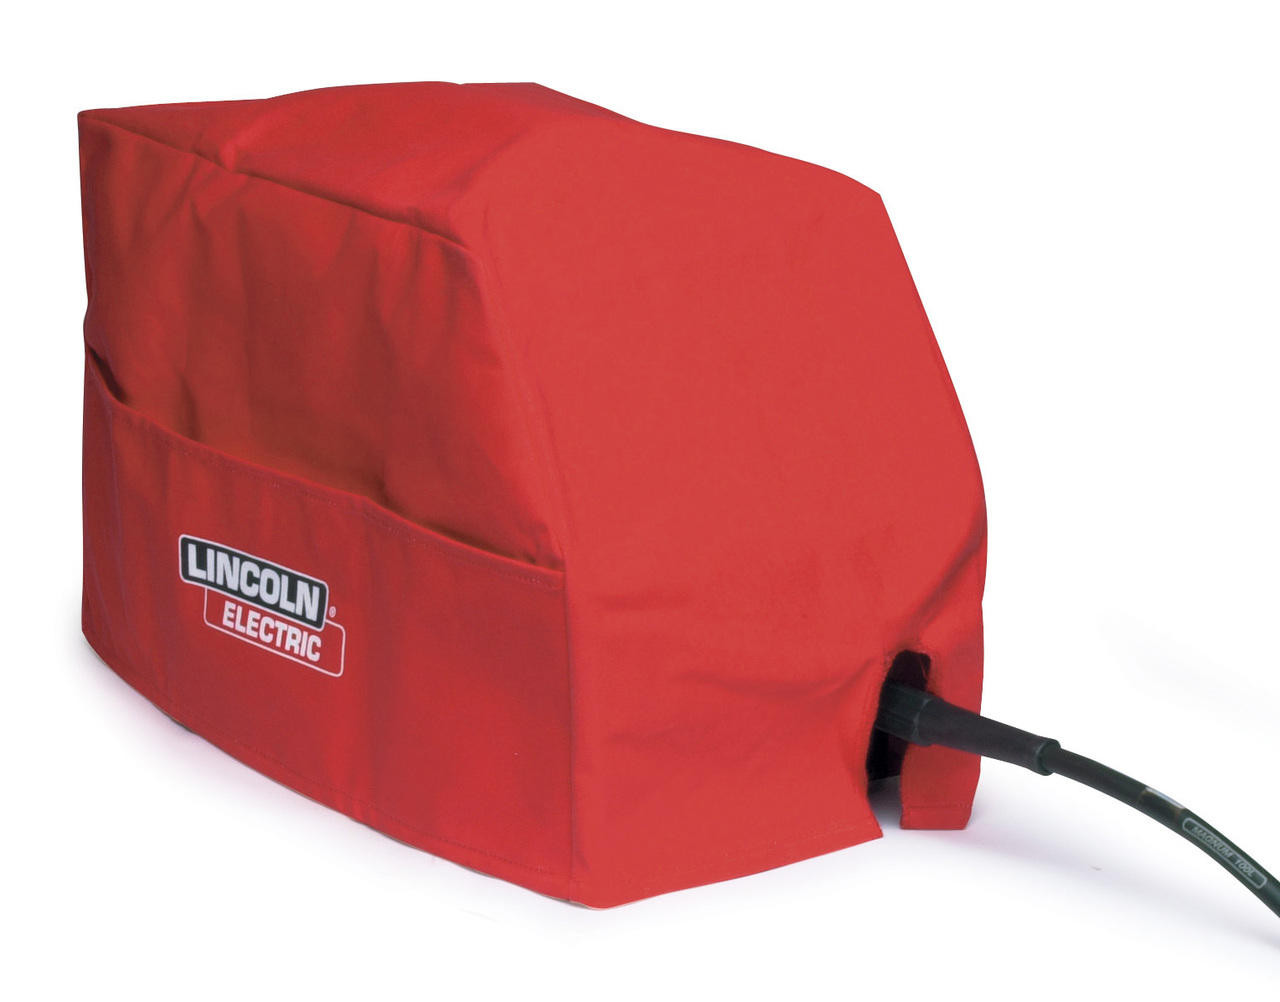 Lincoln Electric Lincoln Electric Canvas Cover Small - K2377-1